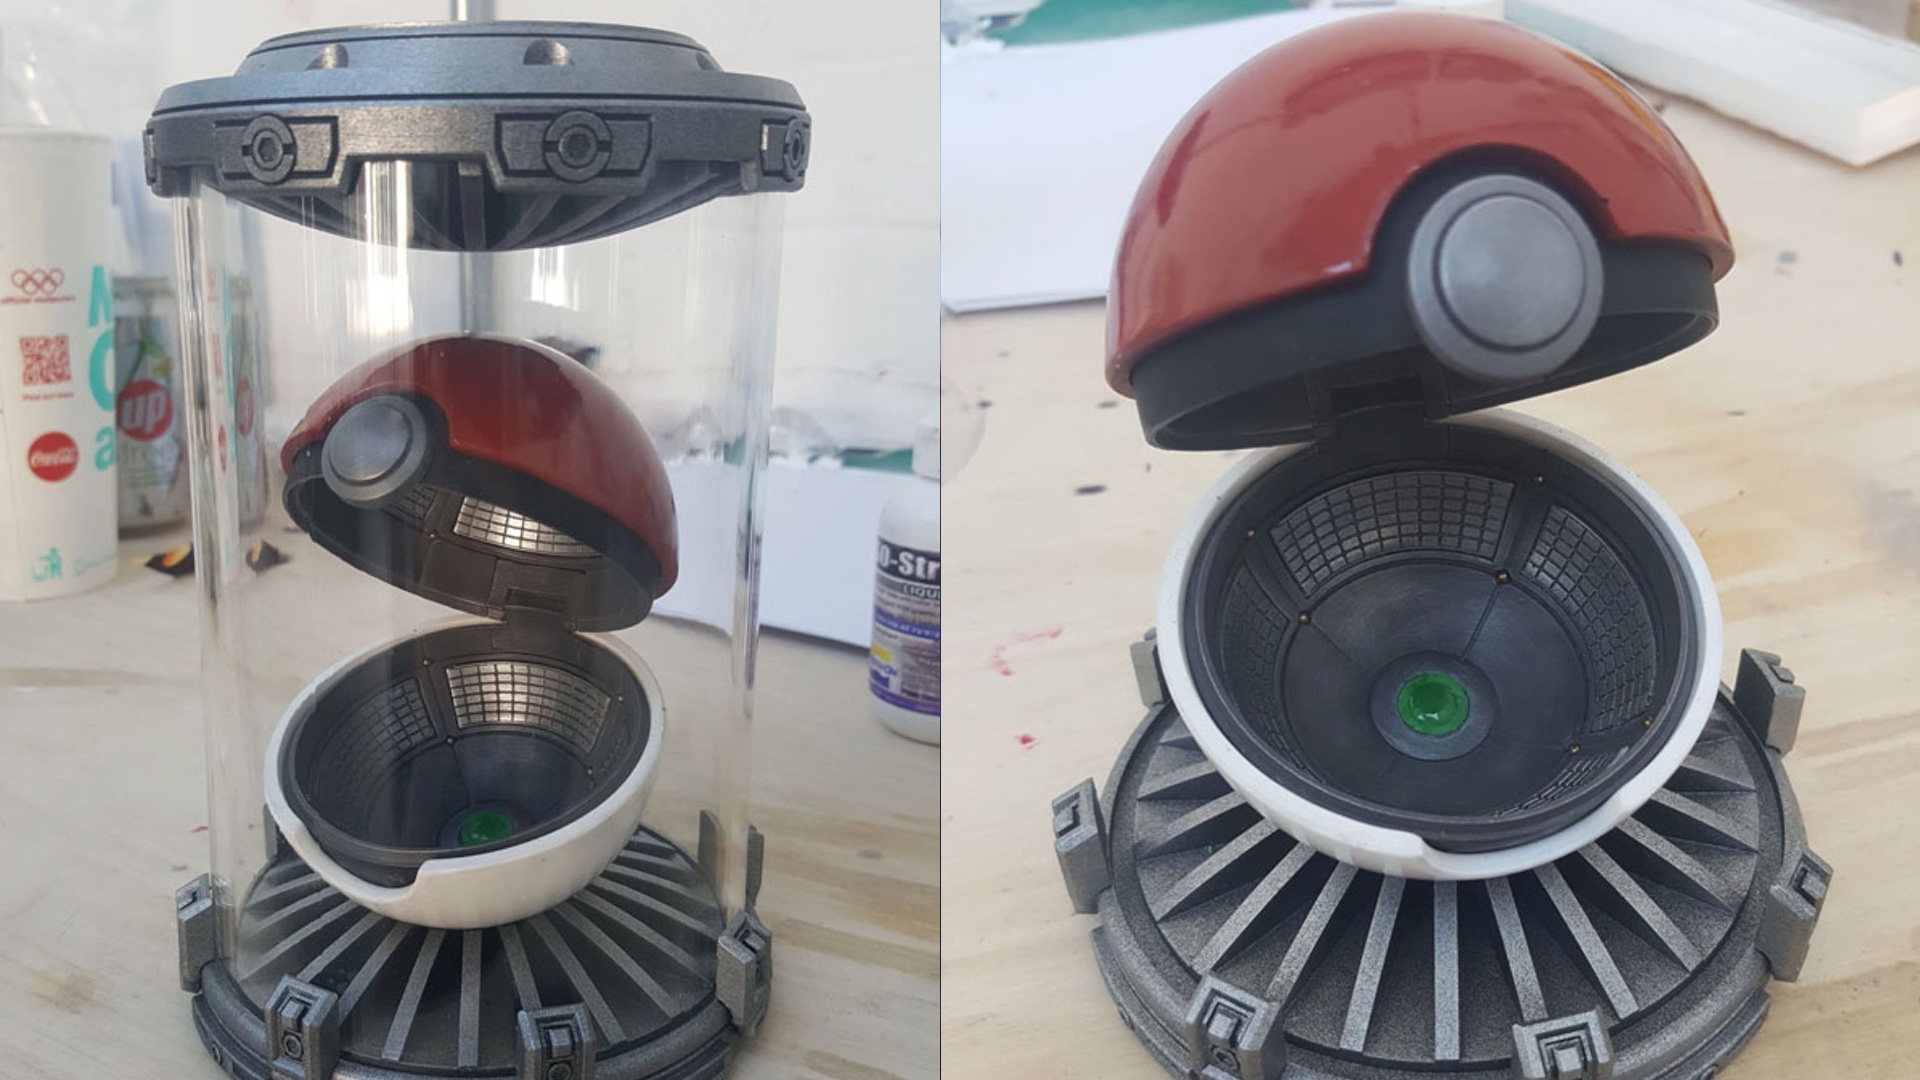 Replica ???? This Poké Ball Replica Has A Crazy Awesome Realistic Look